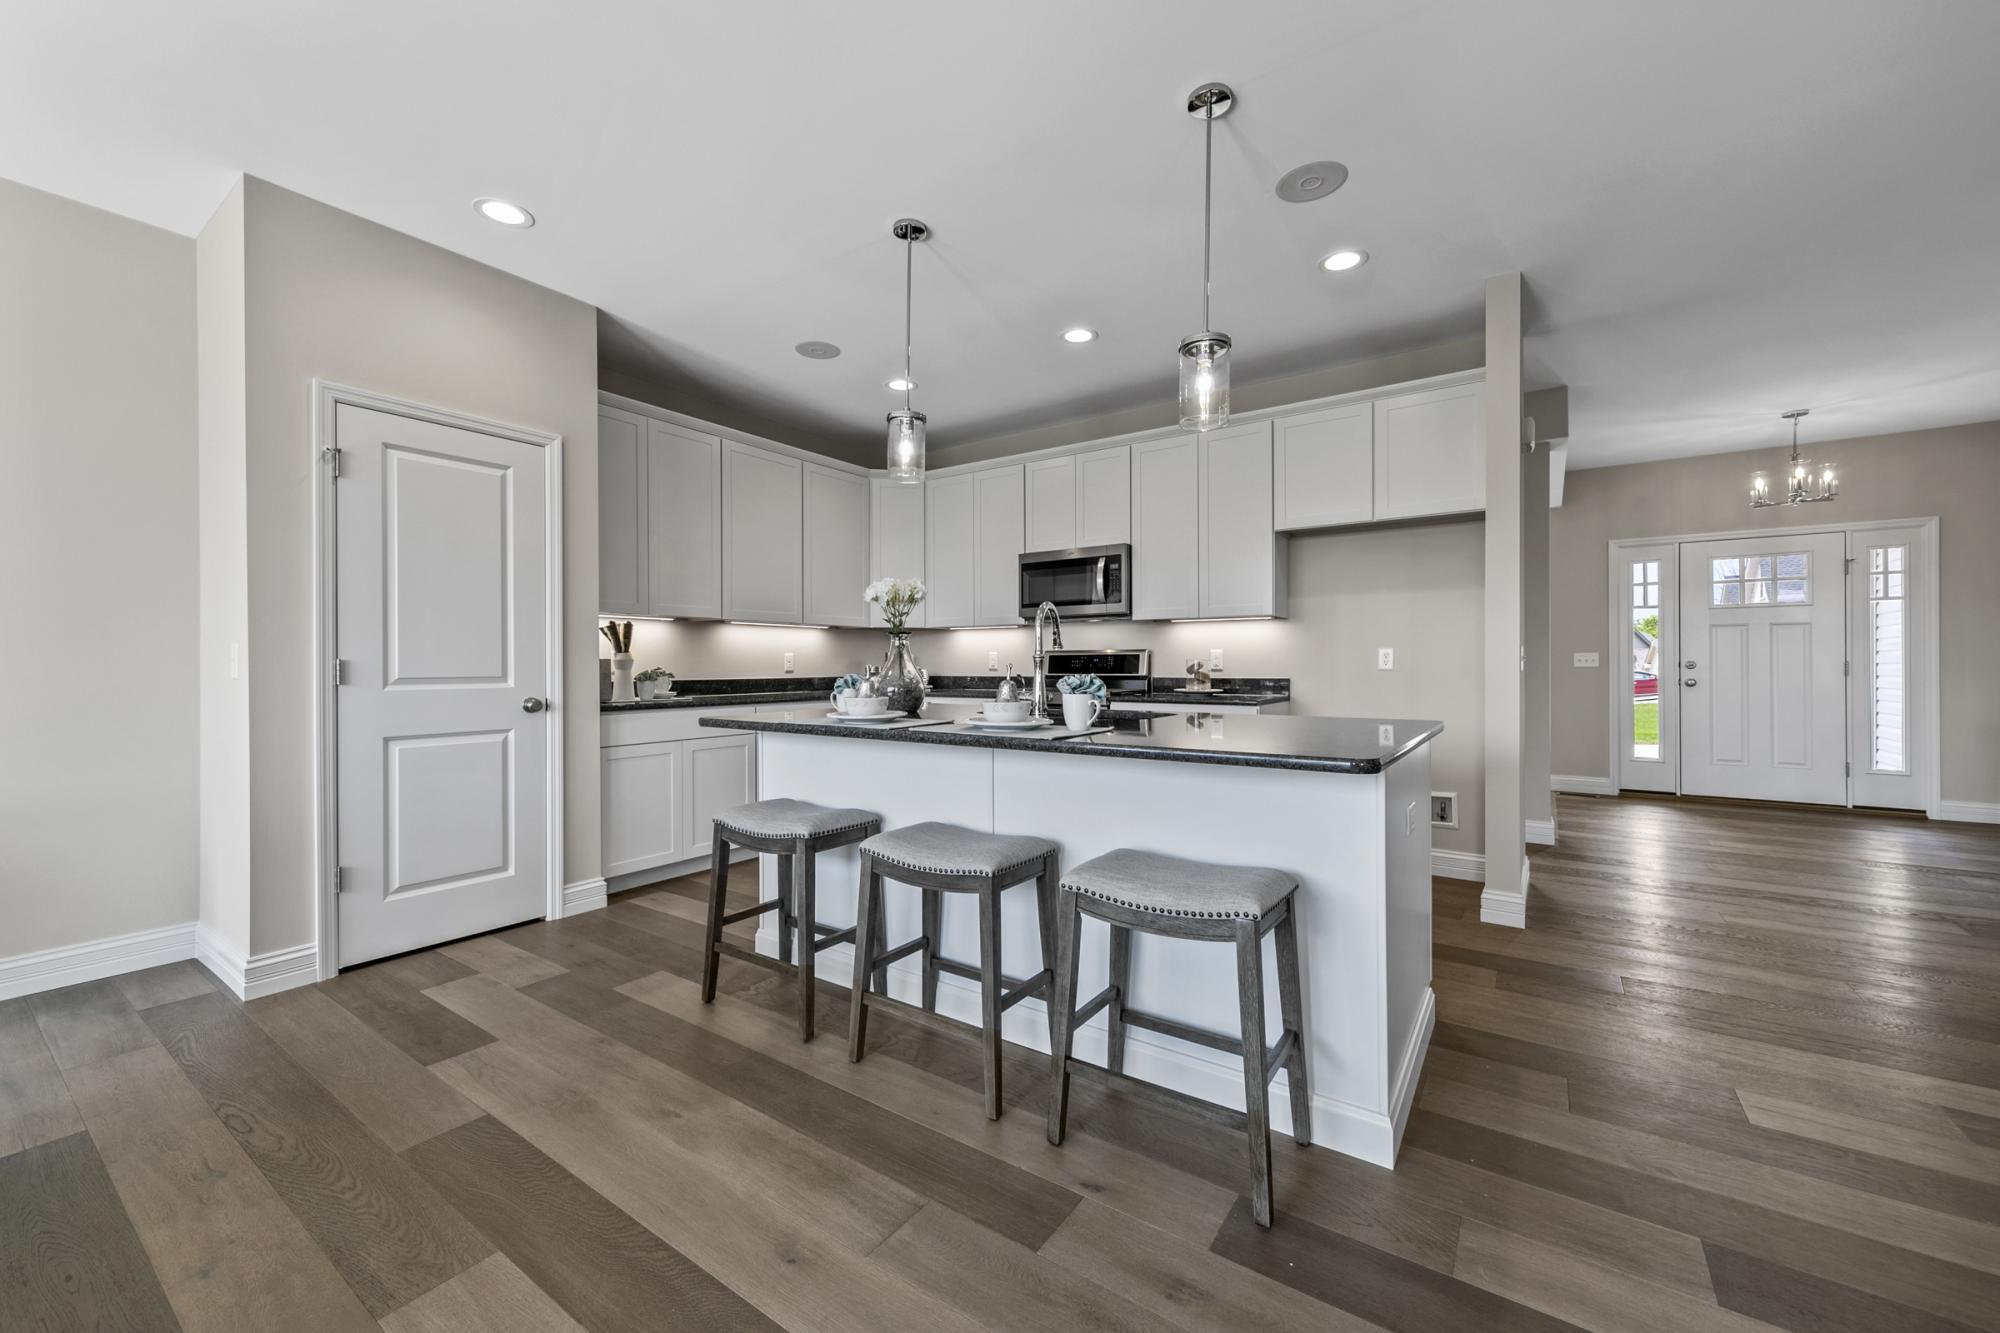 Kitchen featured in the Hemingway By McKelvey Homes in St. Louis, MO